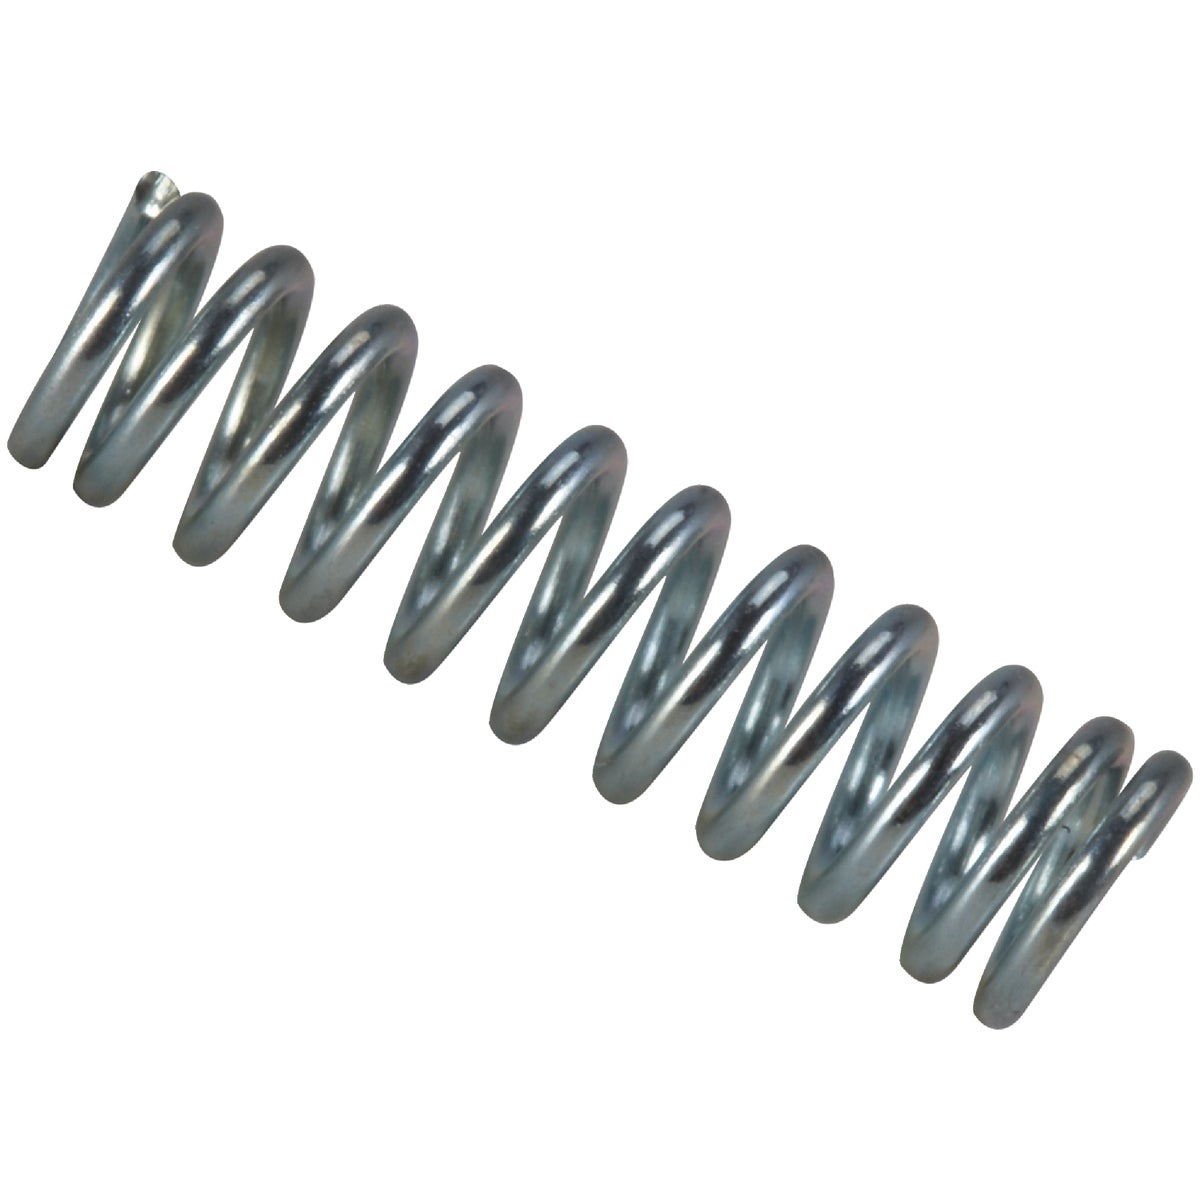 COMPRESSION SPRING - C-818 by Century Spring Corp